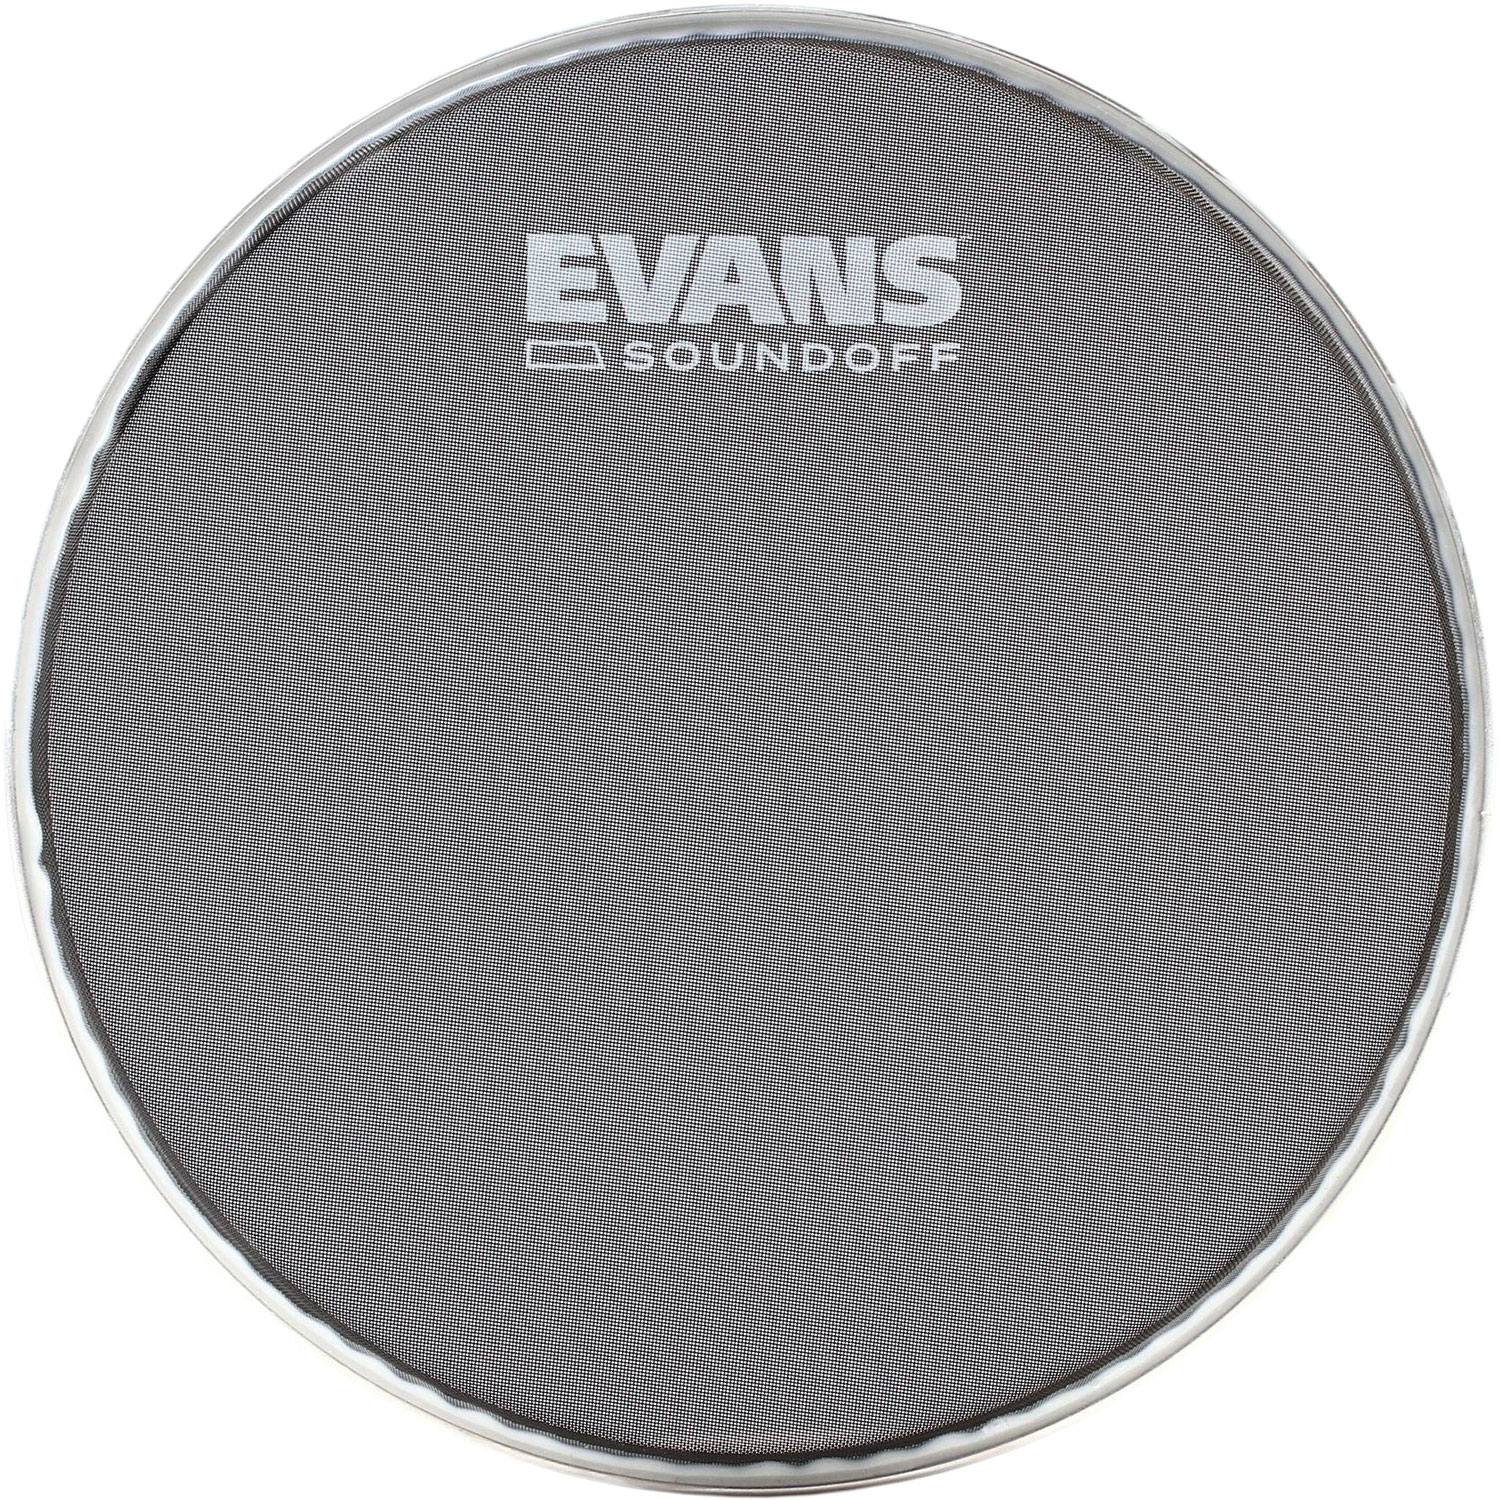 "Evans 18"" SoundOff Mesh Drum Head"